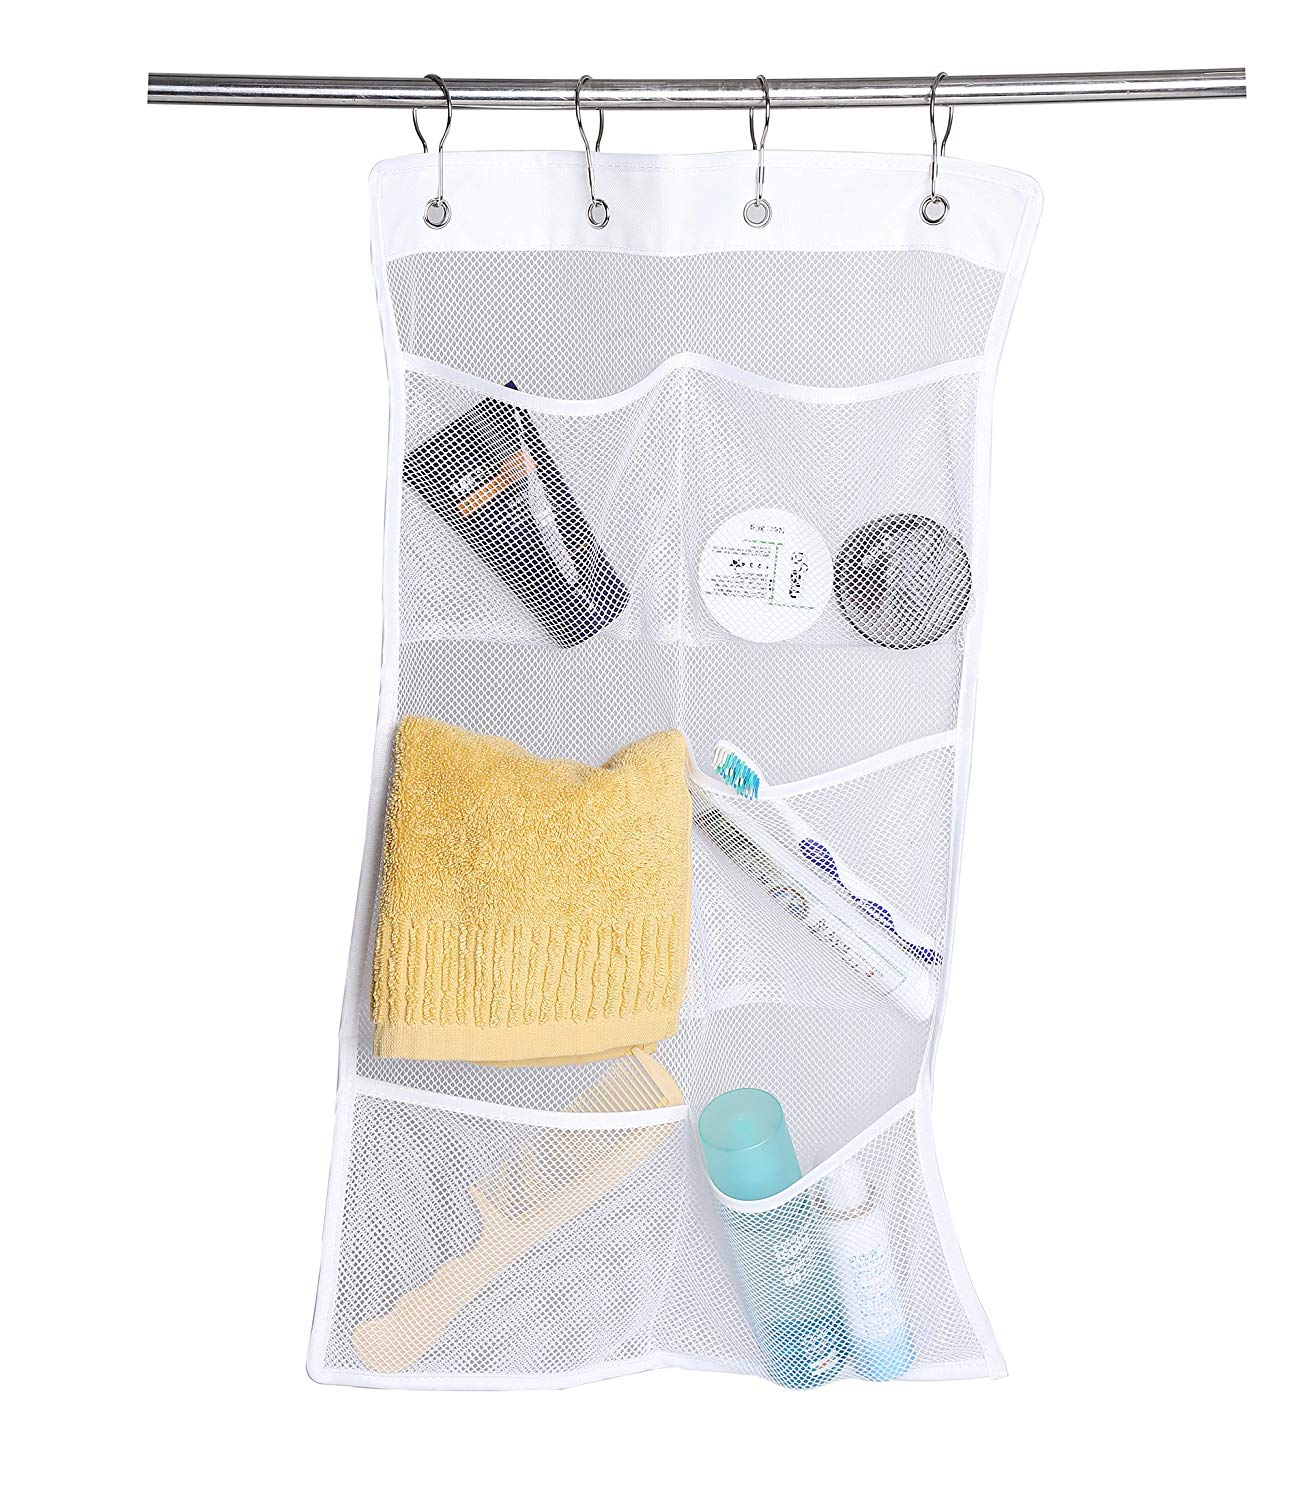 Bath Mesh Organizer With 6 Pockets.okroo Shower Hanging Organizer.Perfect For Bathroom Accessoires, Bath Toy Storage,Camping,Trip (4 Rings and 2 Suction Cups Included)